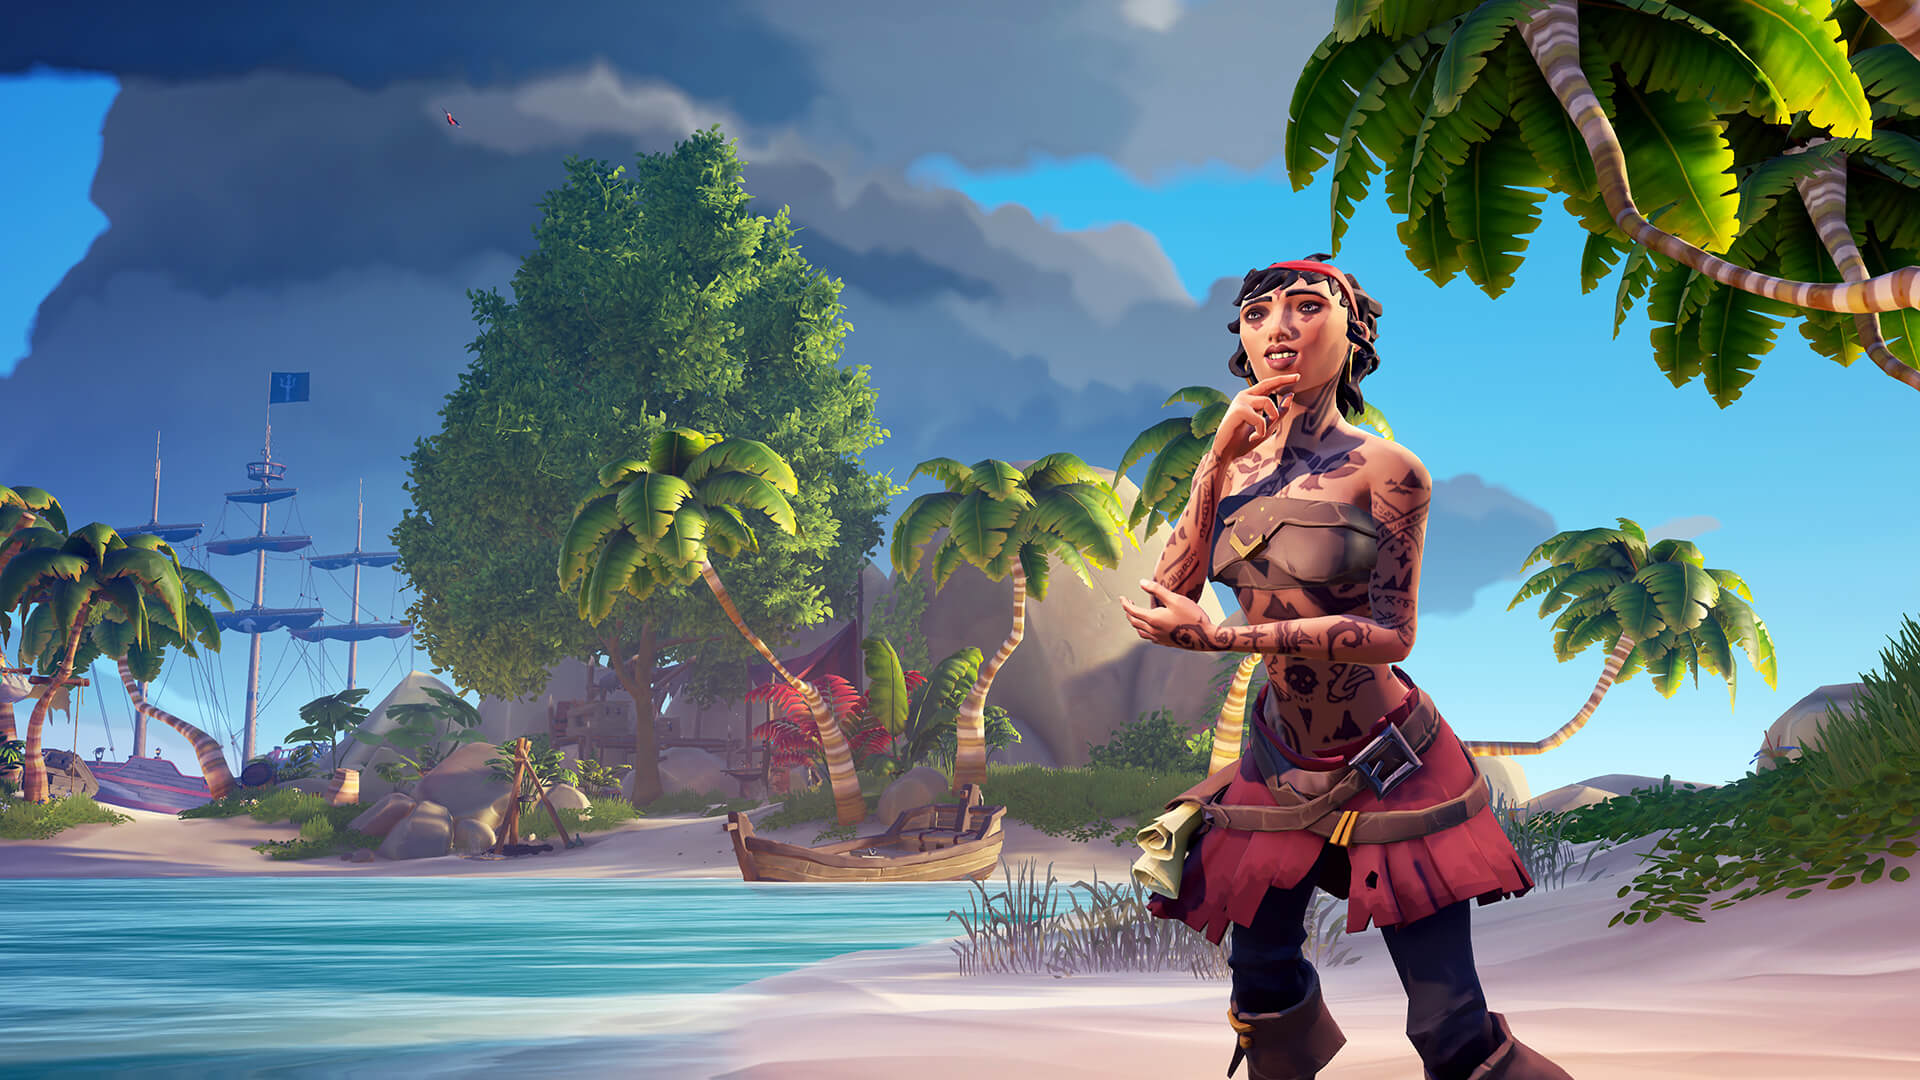 Sea of Thieves Latest Update Celebrates the Community